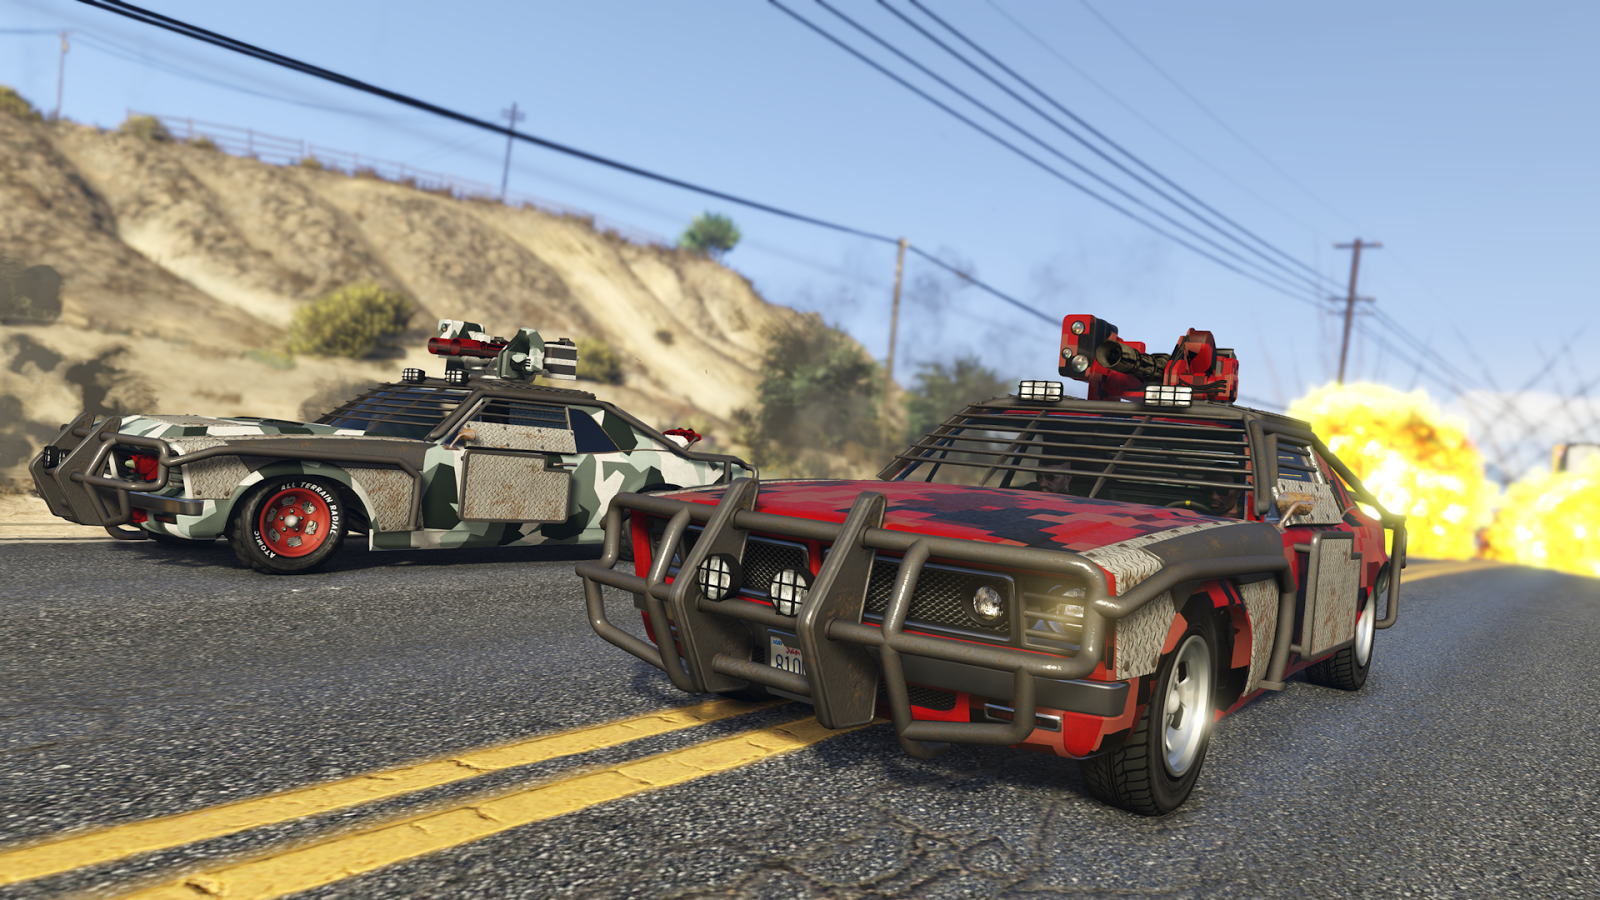 GTA Online's Take On Battlegrounds Is Way More Chaotic